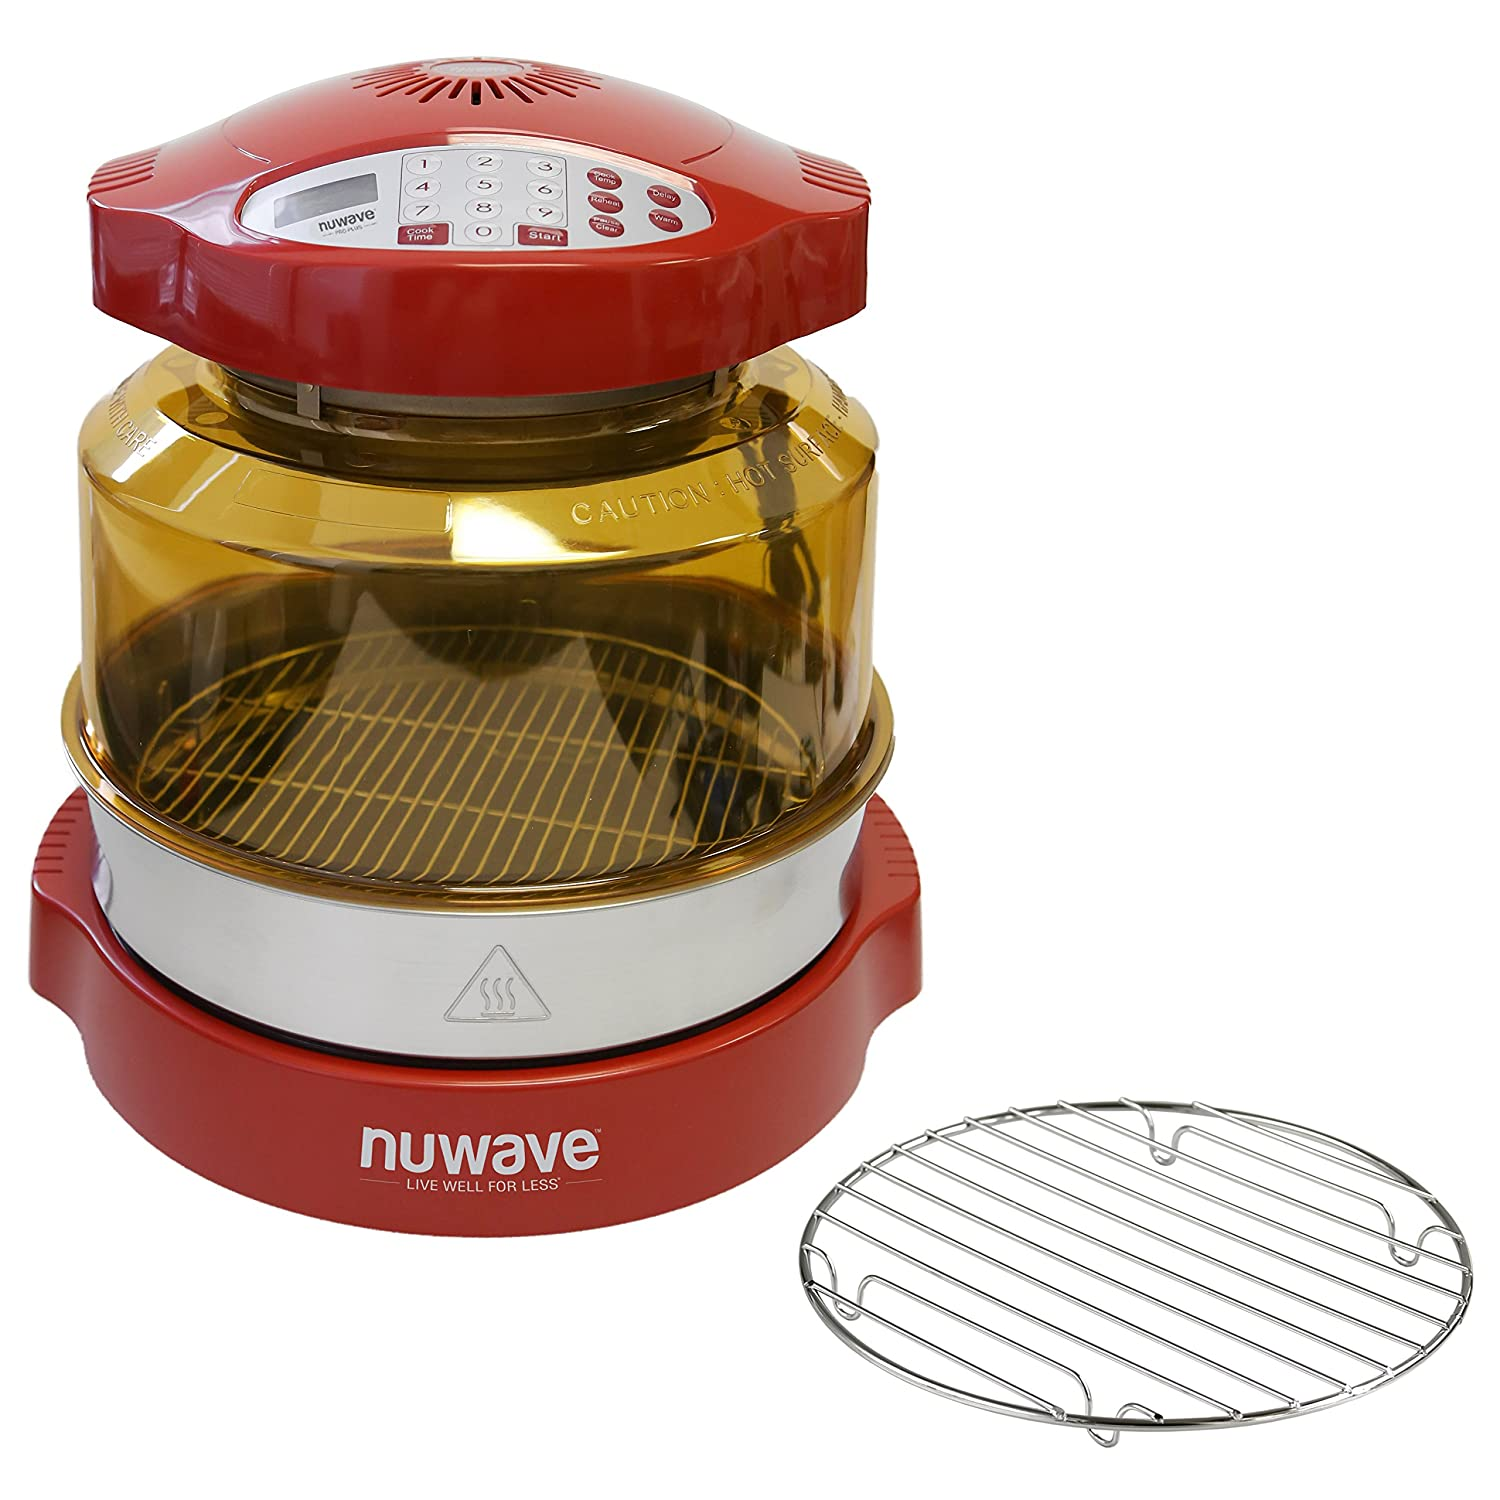 NuWave Oven Red Pro Plus with Stainless Steel Extender Ring Kit and Additional 9.25 Inch Cooking Rack